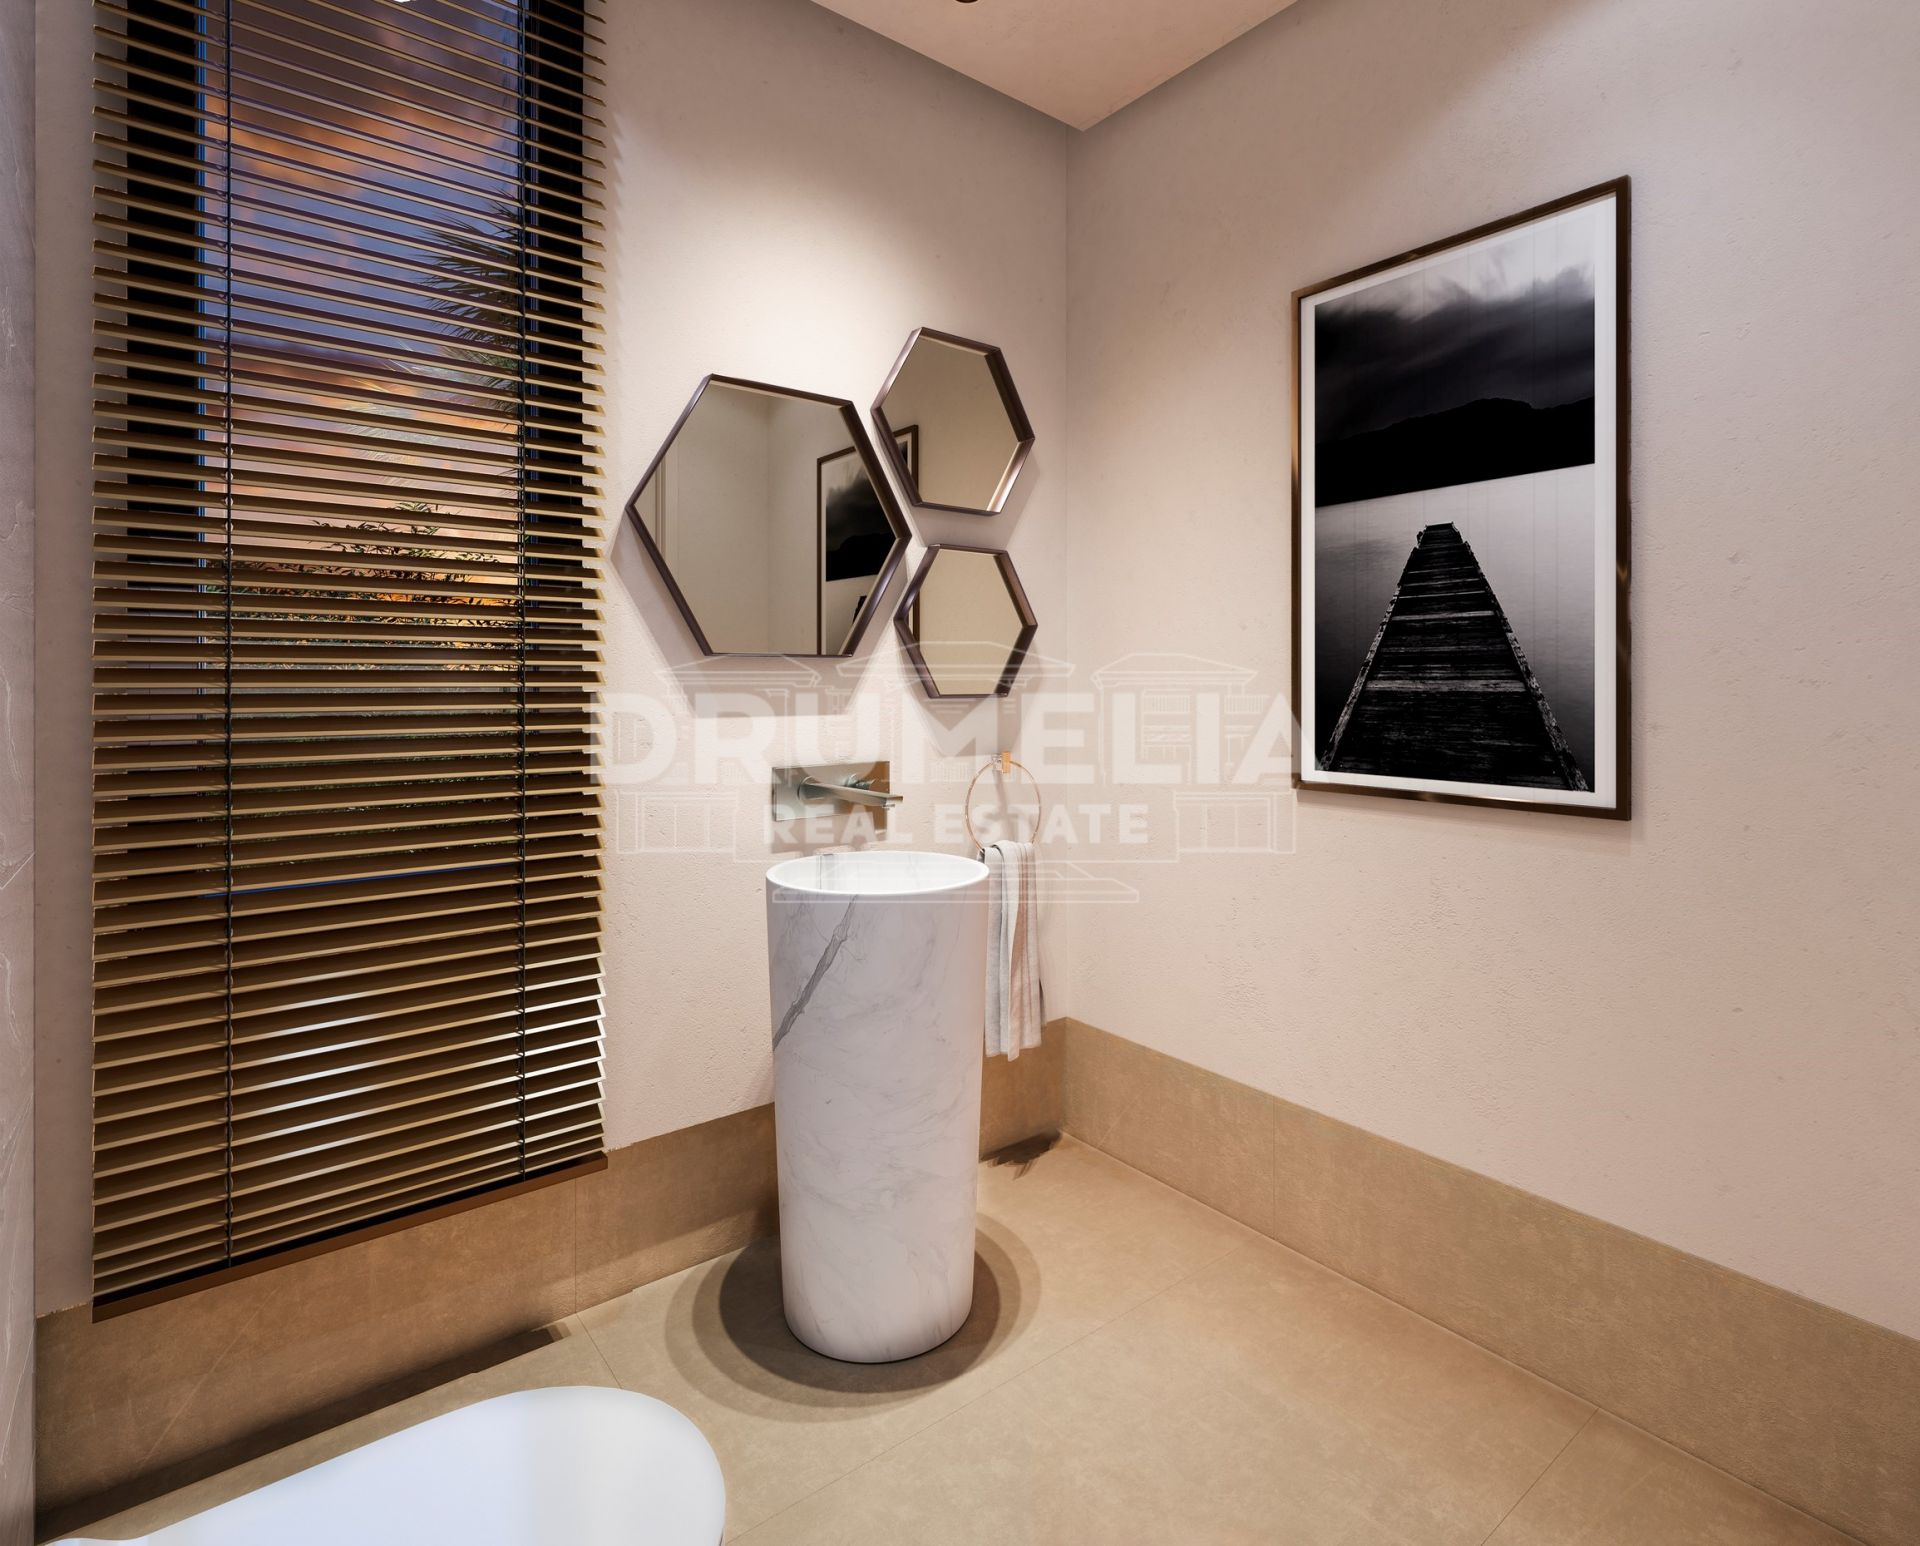 Benahavis, New Stylish Modern Luxury Ground Floor Apartment, Real de La Quinta, Benahavis